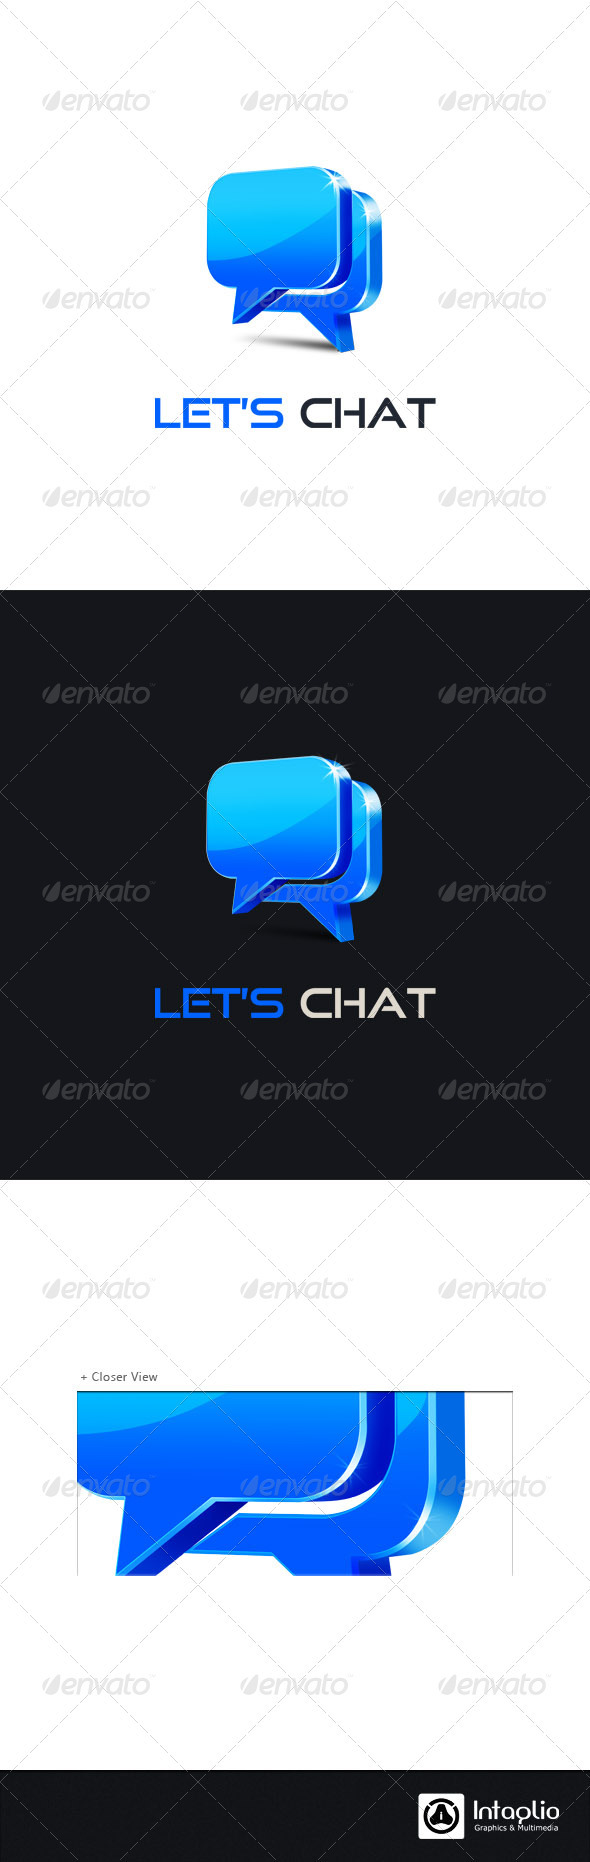 Social Media Logo - Let's Chat - 3d Abstract